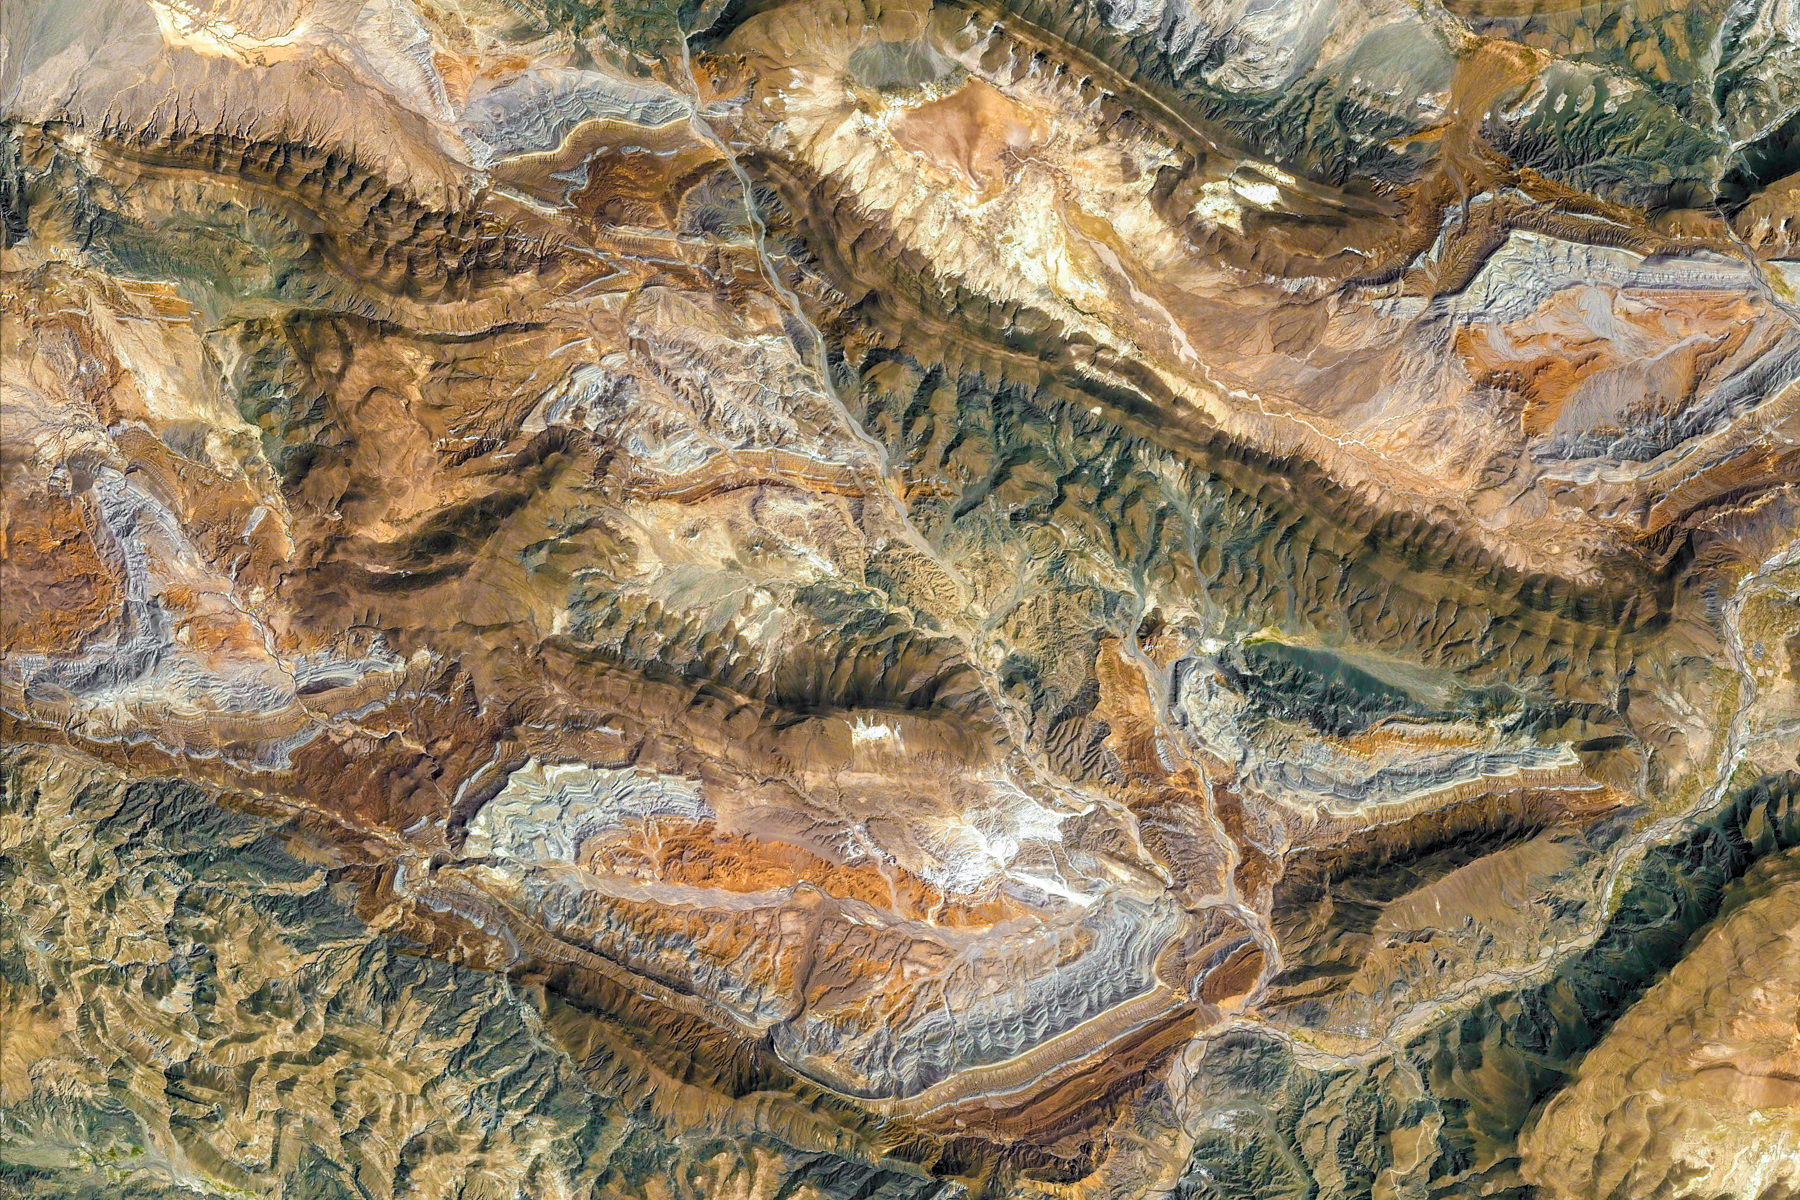 google-earth-Bolivia-Antonio-Quijarro-14652